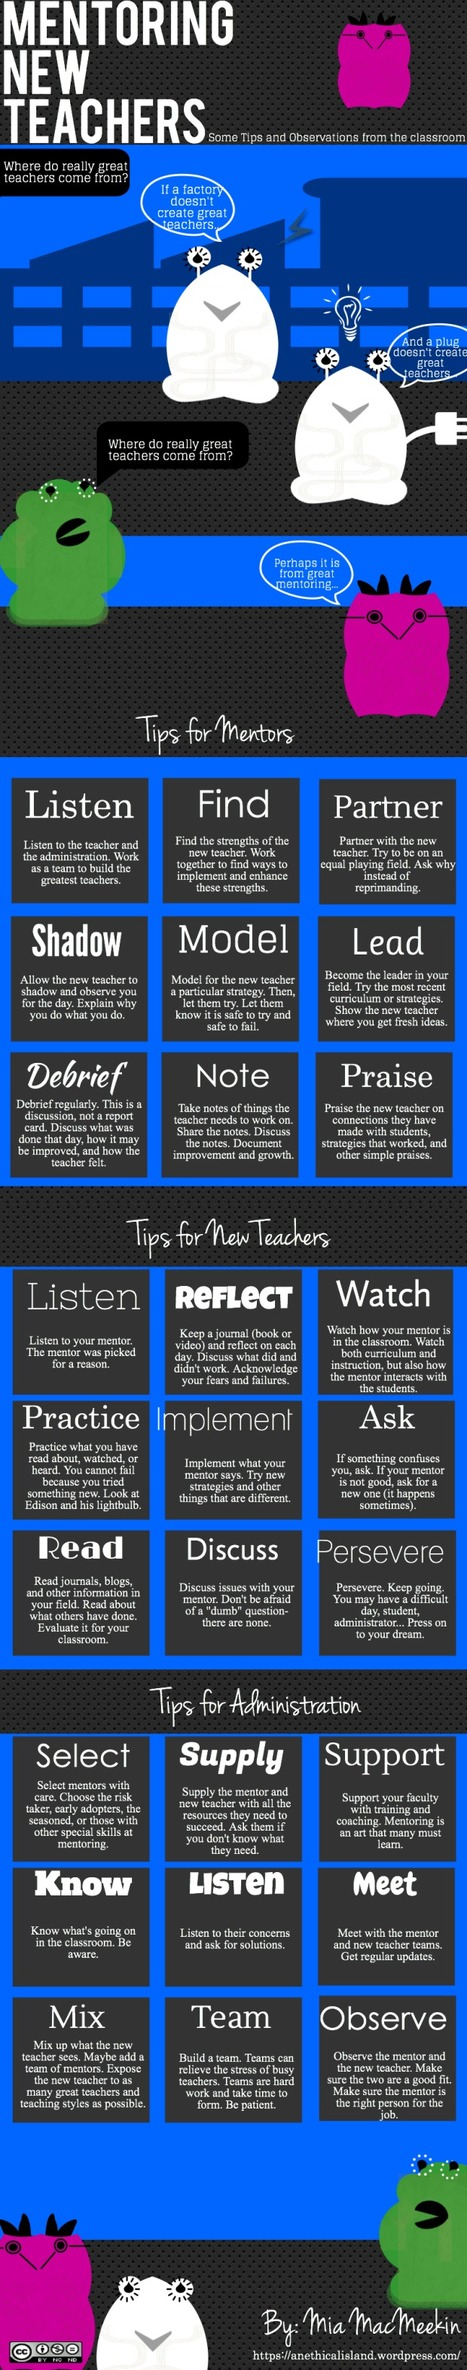 27 Tips For Mentoring New Teachers [Infographic] | BCPVPA - Short Course - Group 5 - Web Sites to Share | Scoop.it